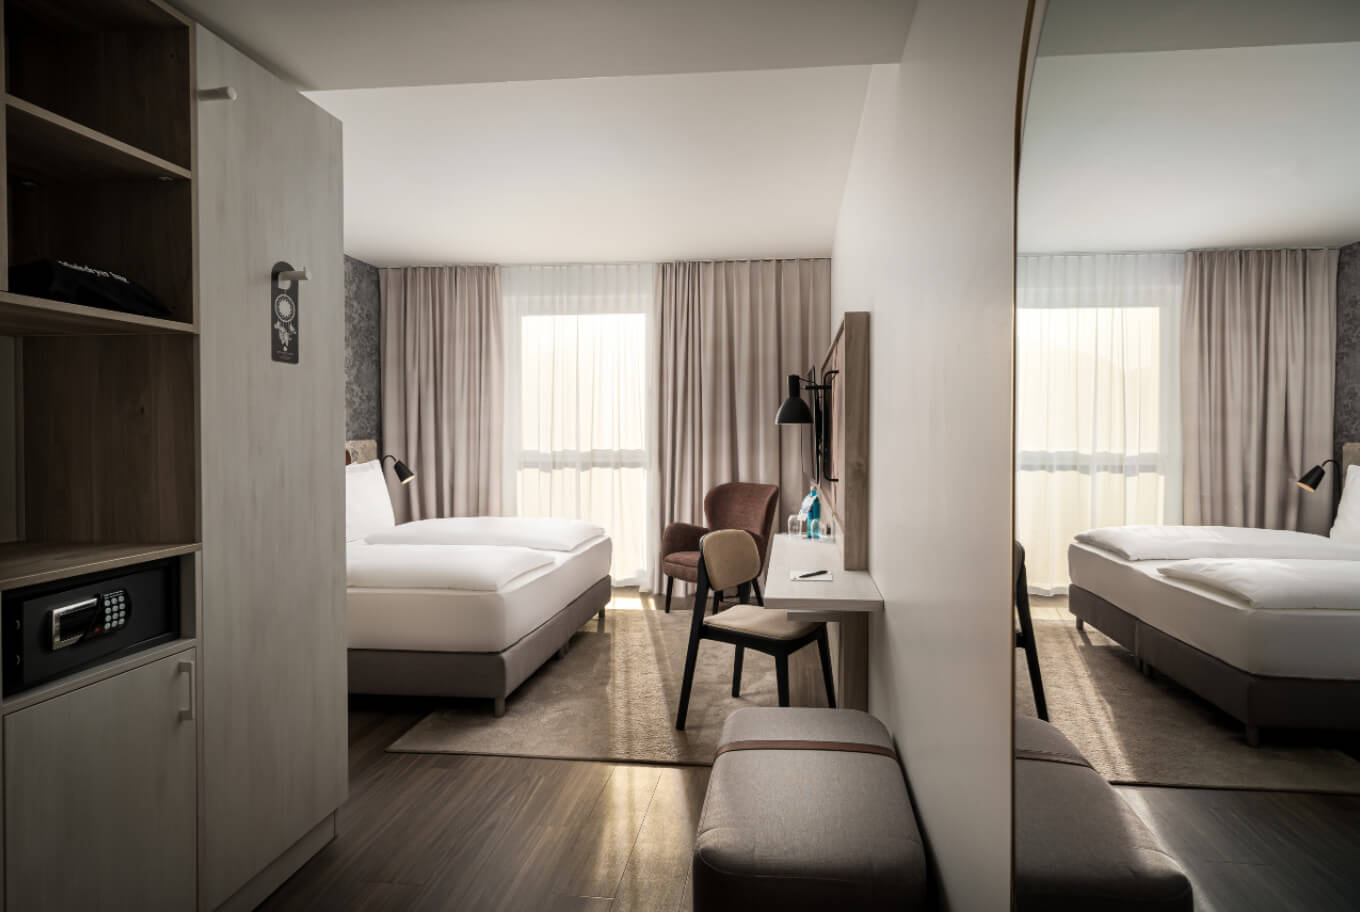 Overnight stay in a superior room at Arthotel ANA Rostock.